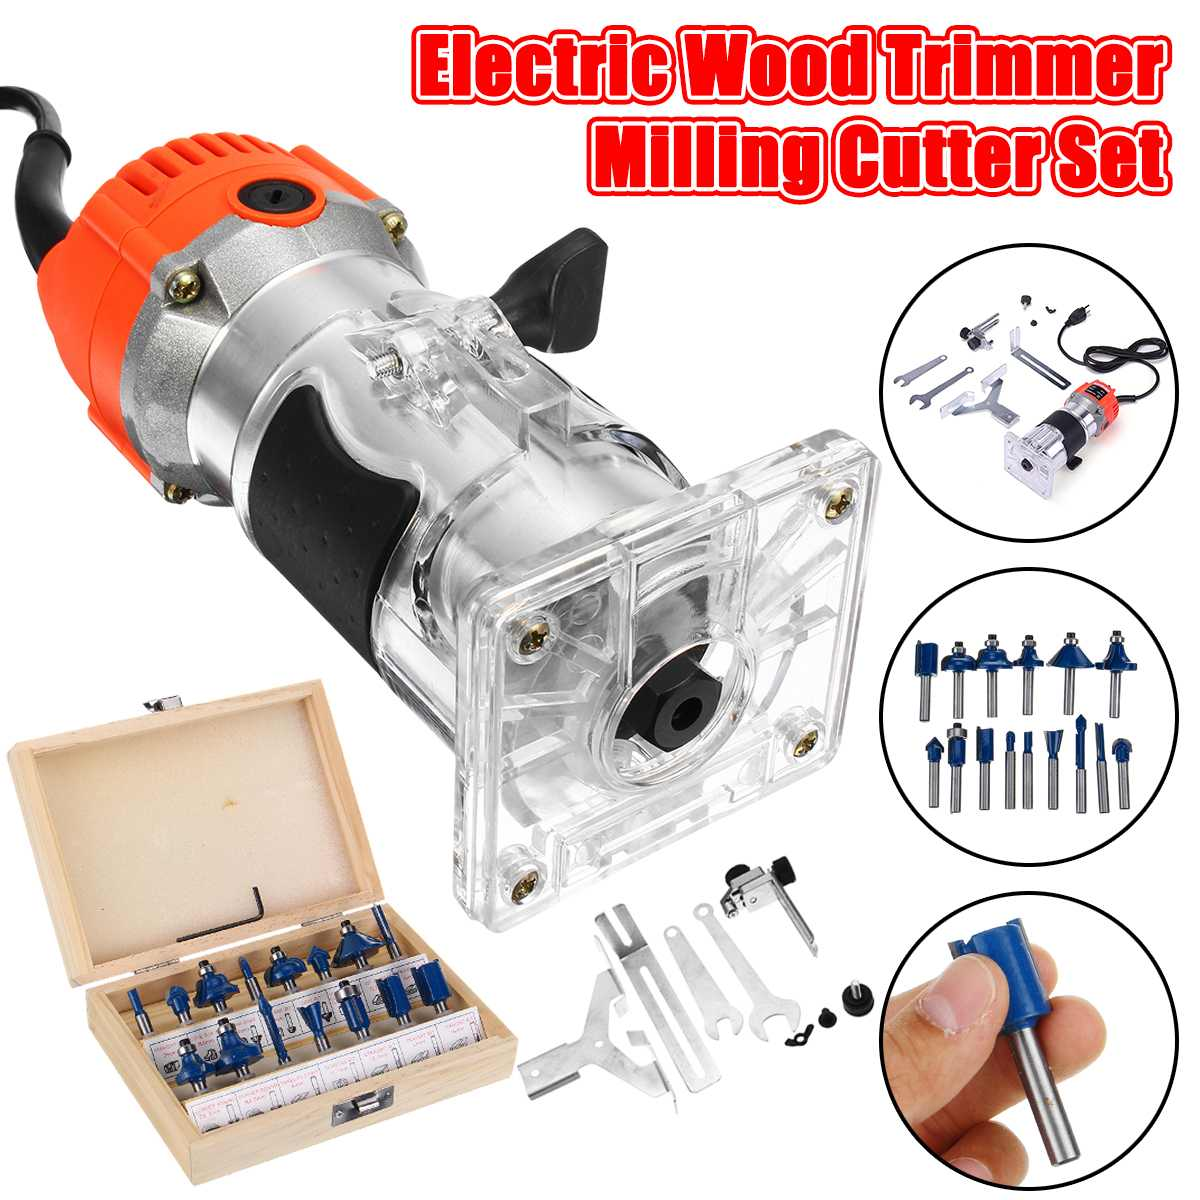 1200W 220V Electric Wood Trimmer Laminator 35000r/min Router Joiners Tool Set Aluminum+15pcs 6.35mm Collet Diameter Wood Router